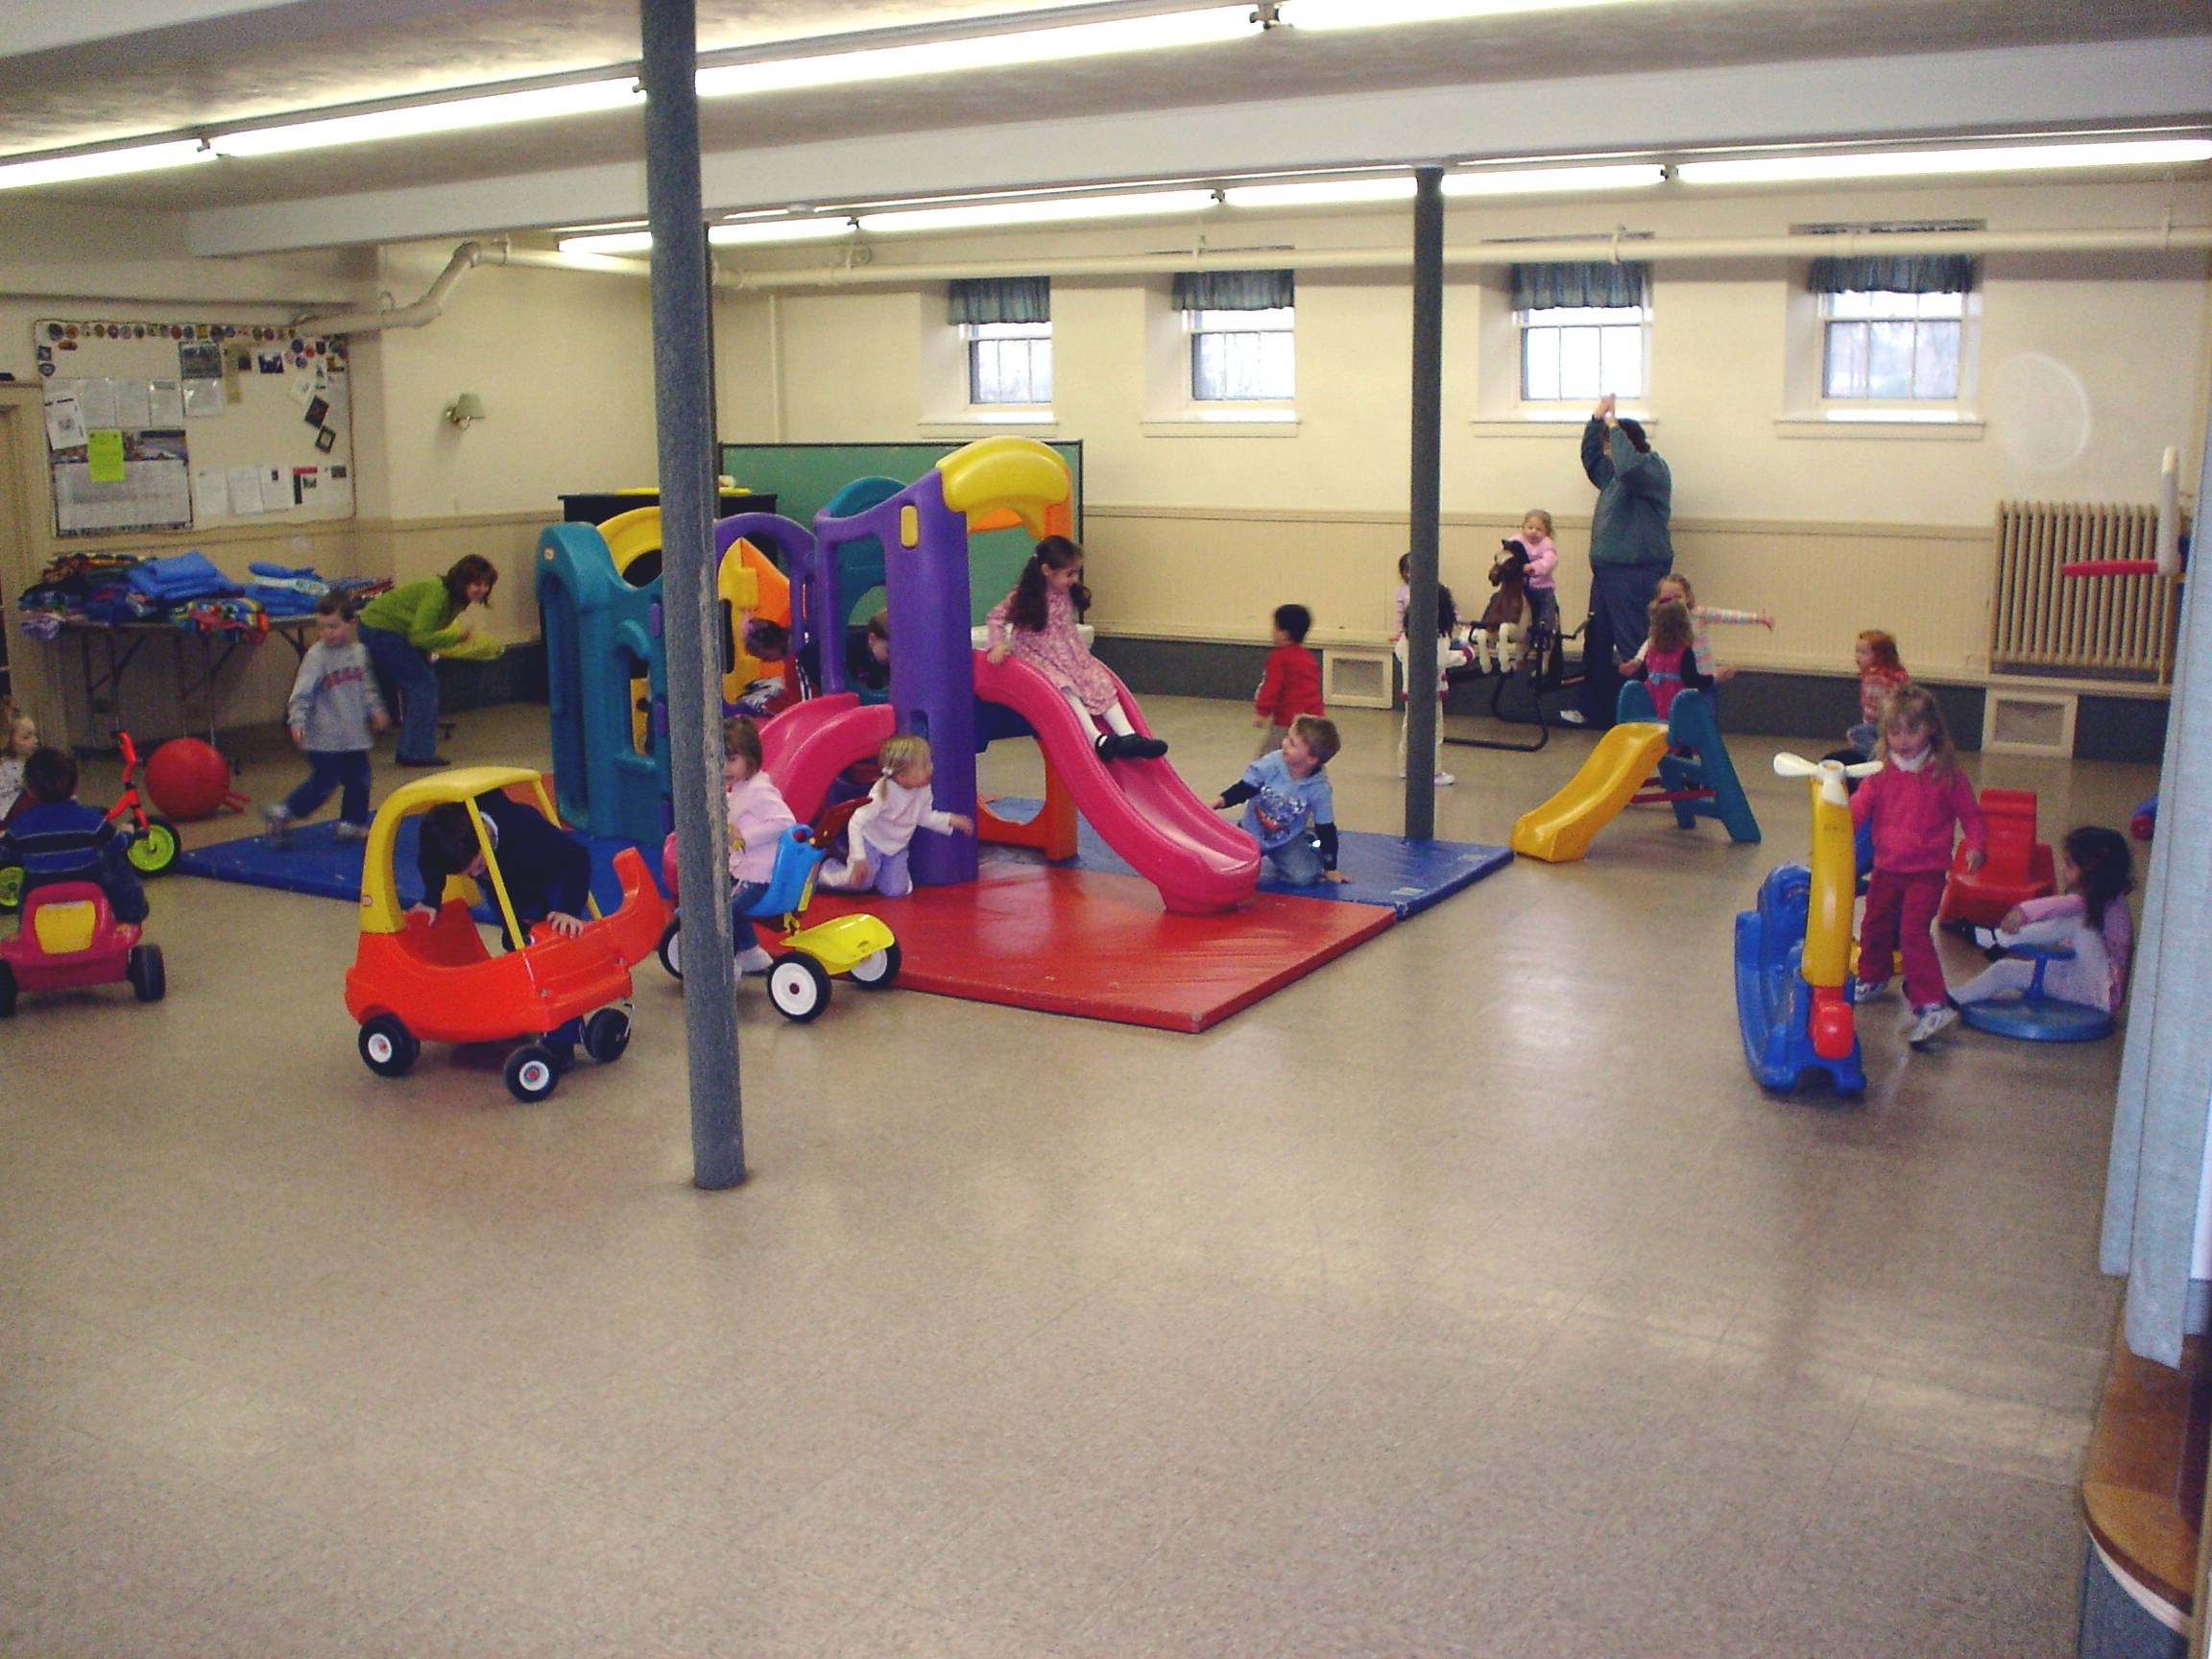 Preschool playground clipart clipart suggest for Indoor gym equipment for preschool